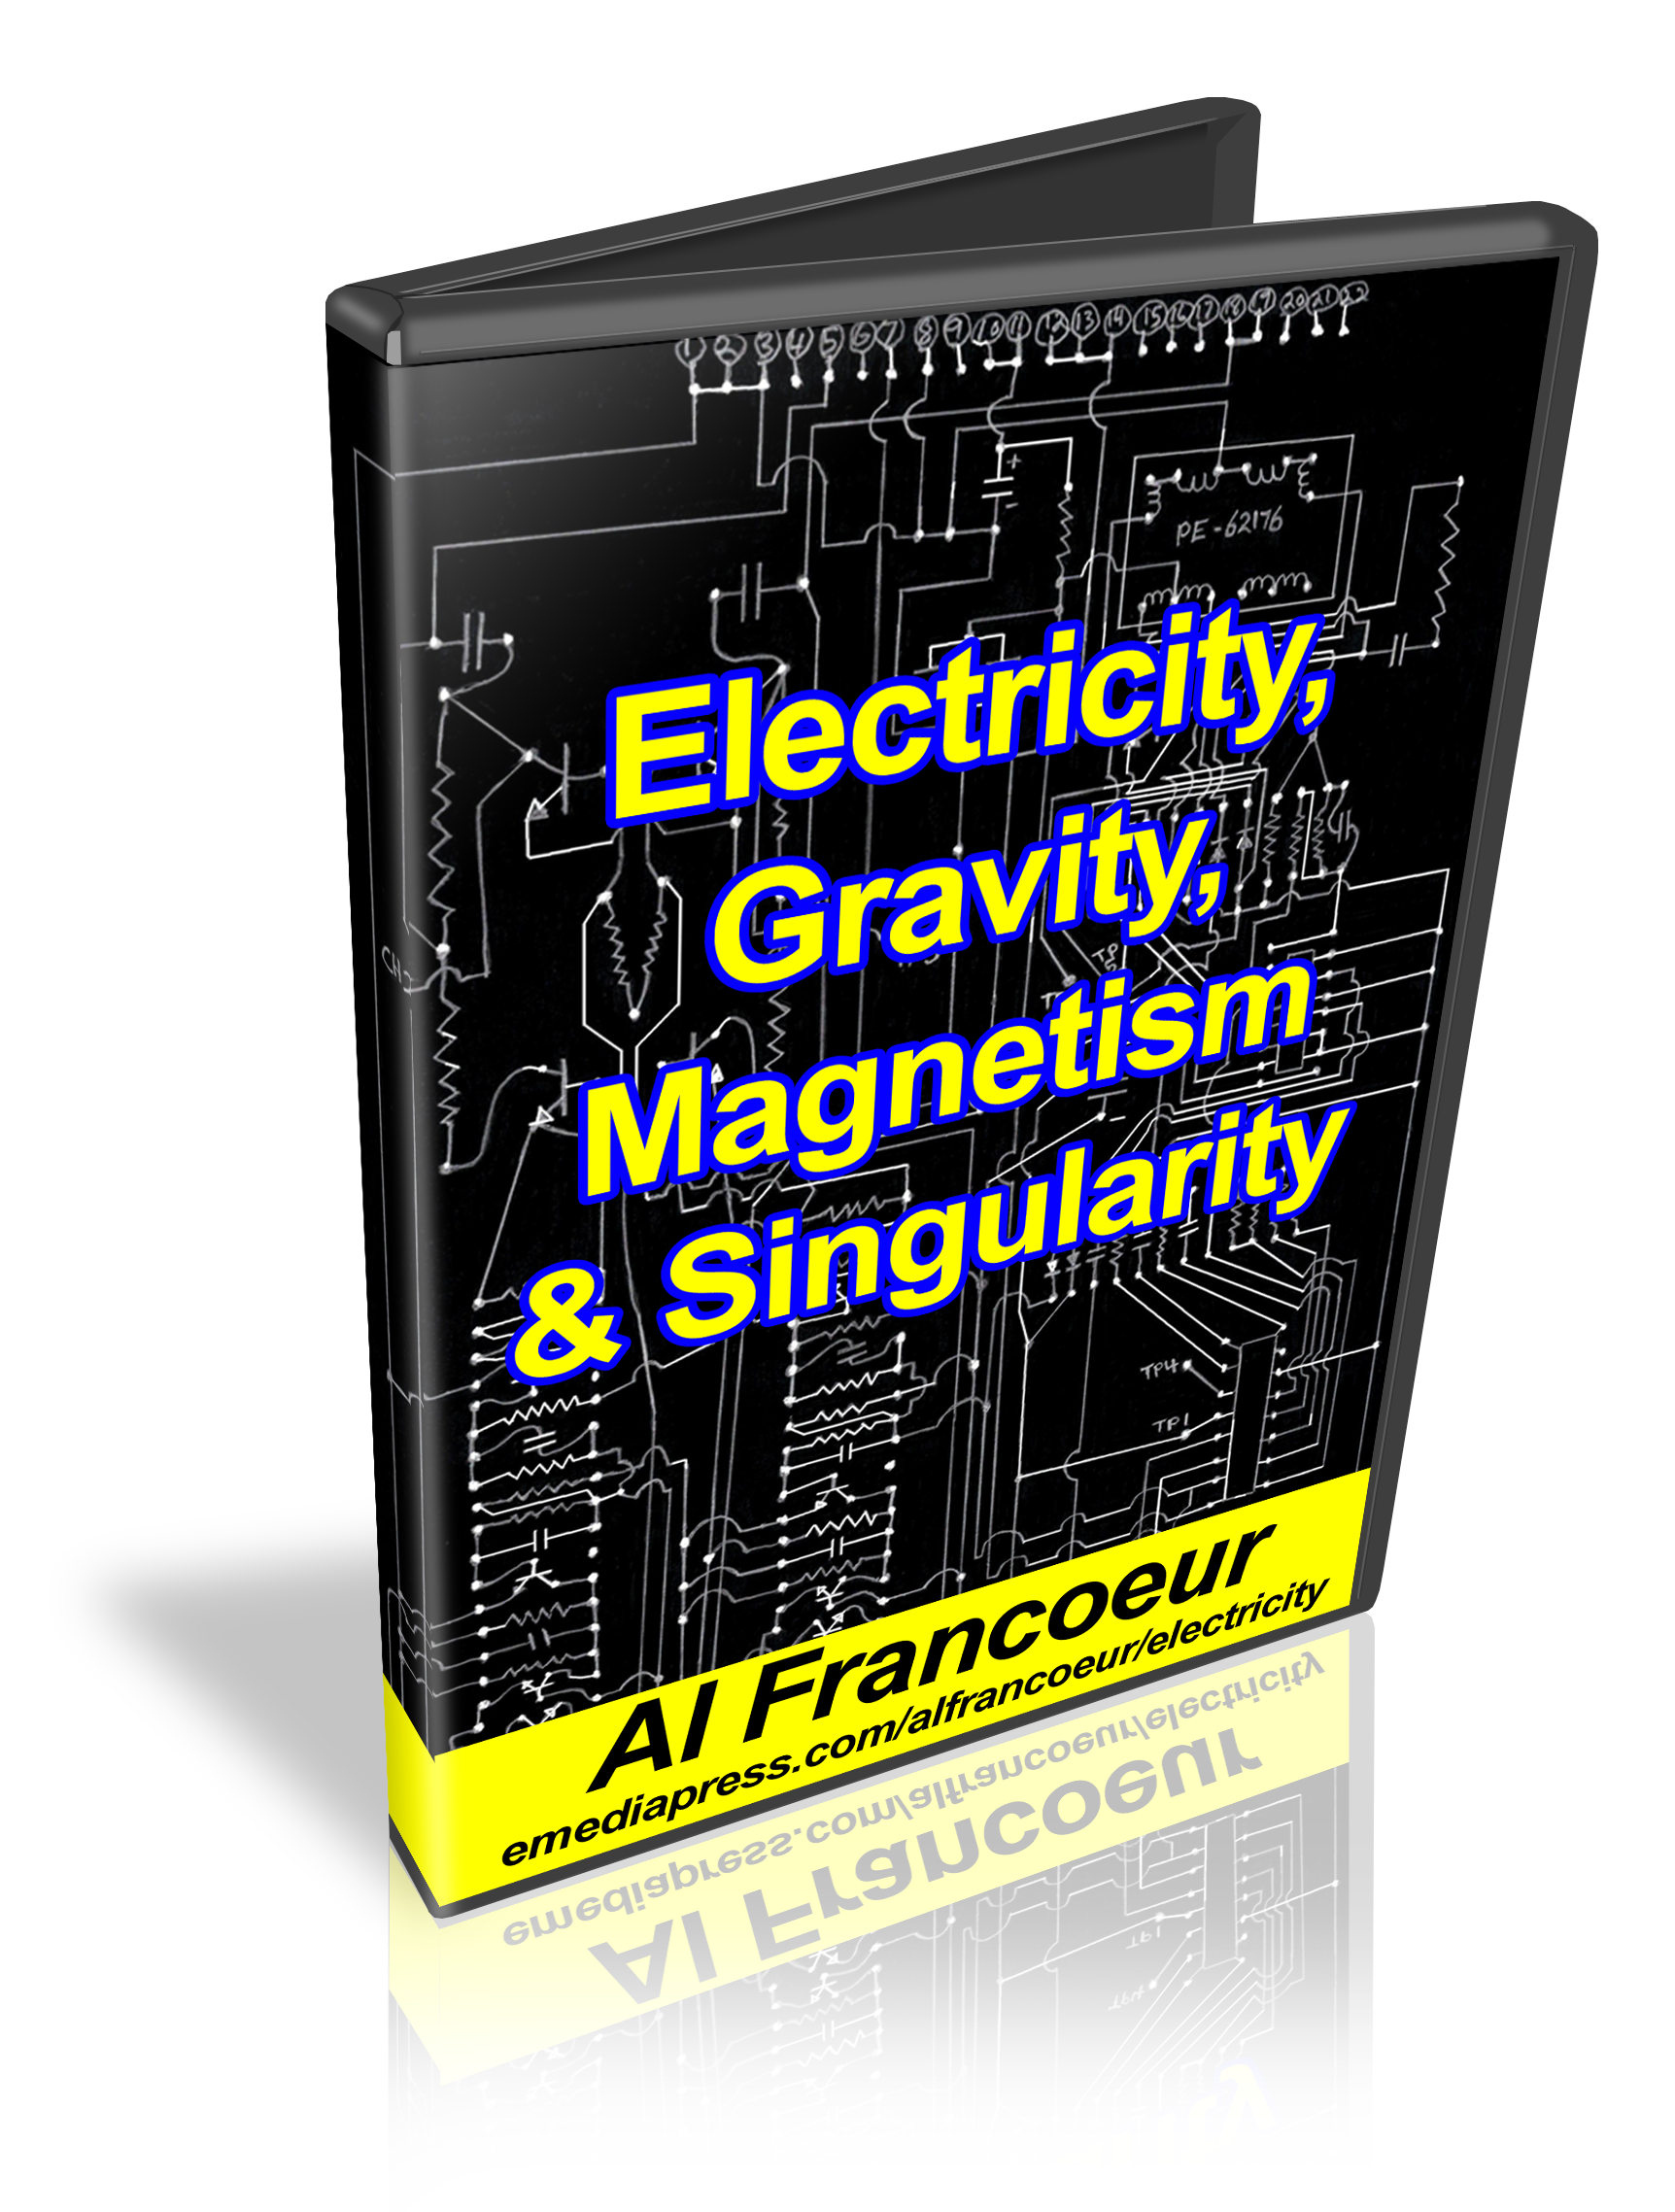 Electricity, Magnetism, Gravity & Singularity by Al Francoeur